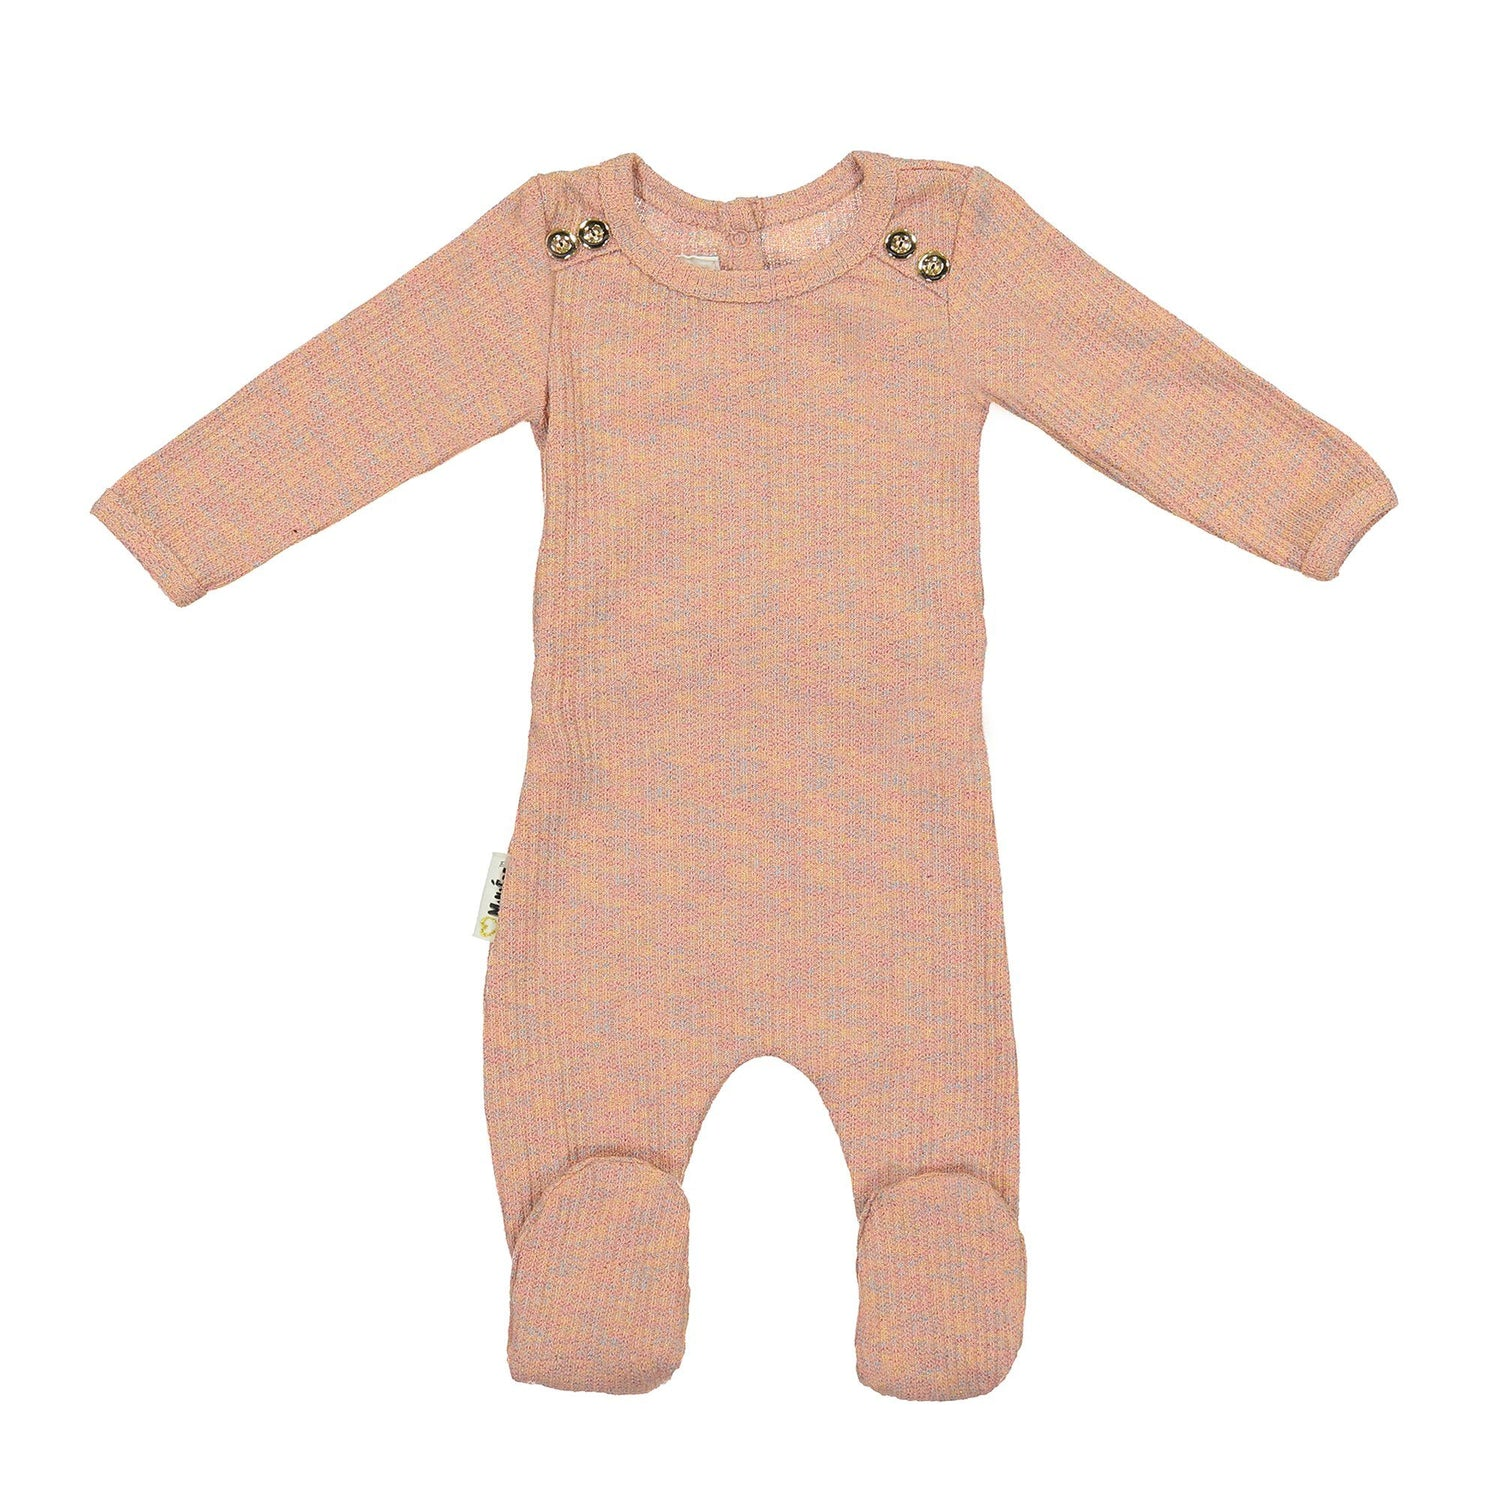 Sparkle Rib Footie Baby Footies Maniere Accessories Mauve 3 Months